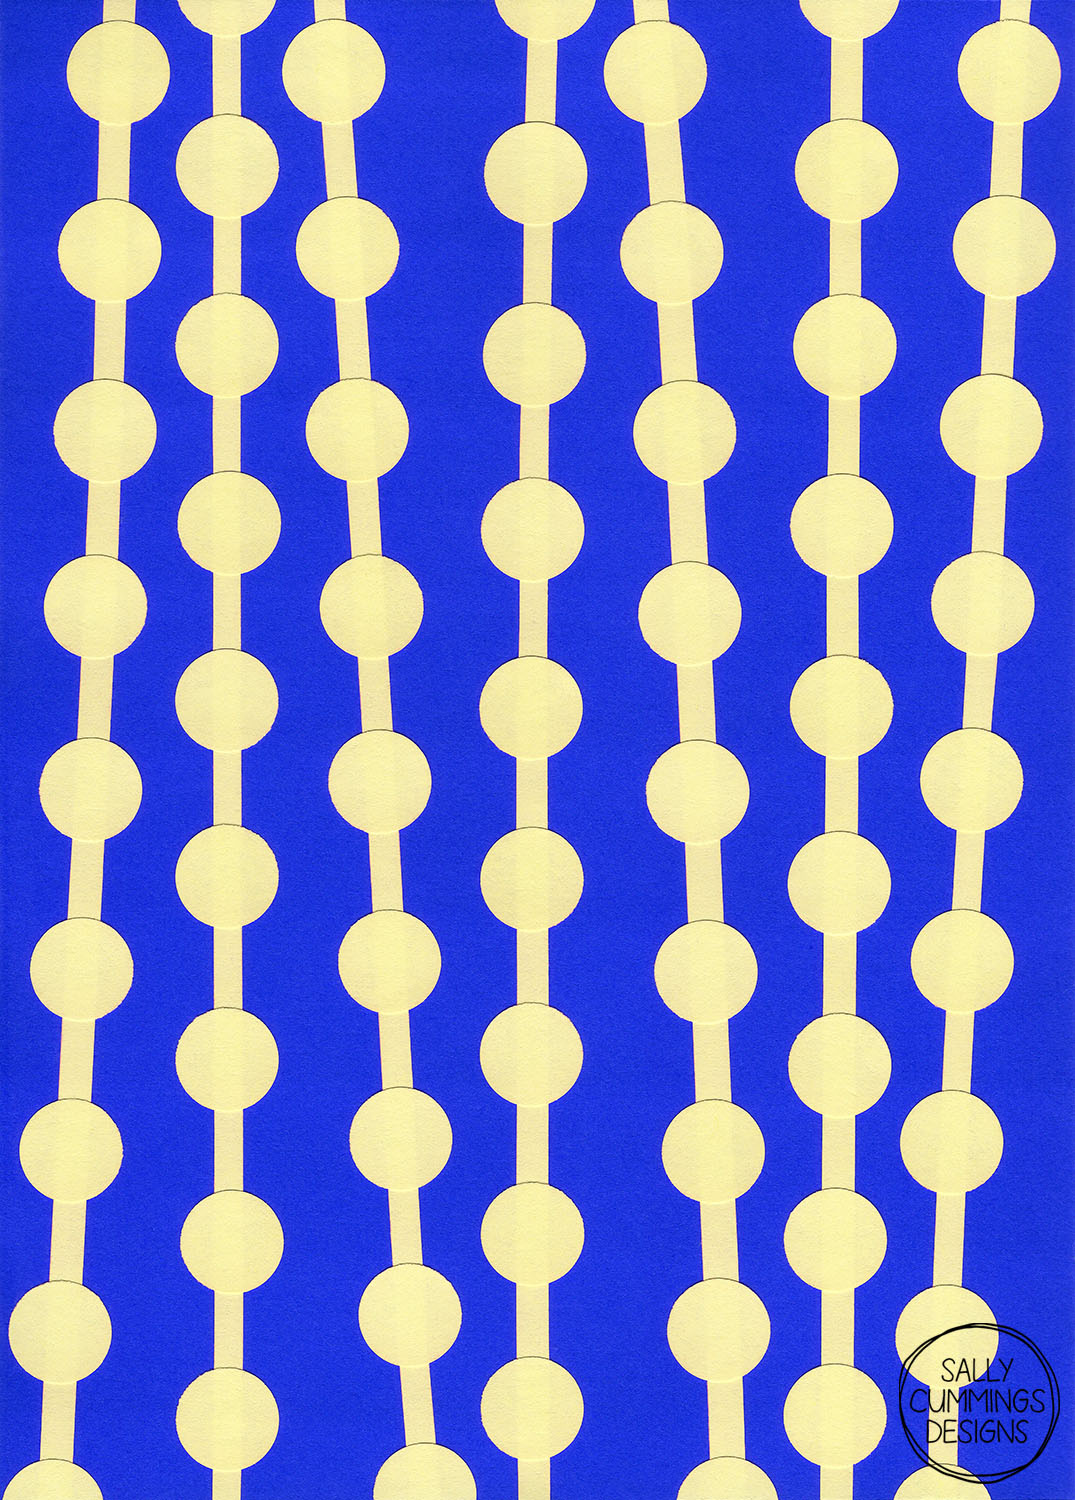 Sally Cummings Designs - Bead Curtain Collage (Blue and Yellow)